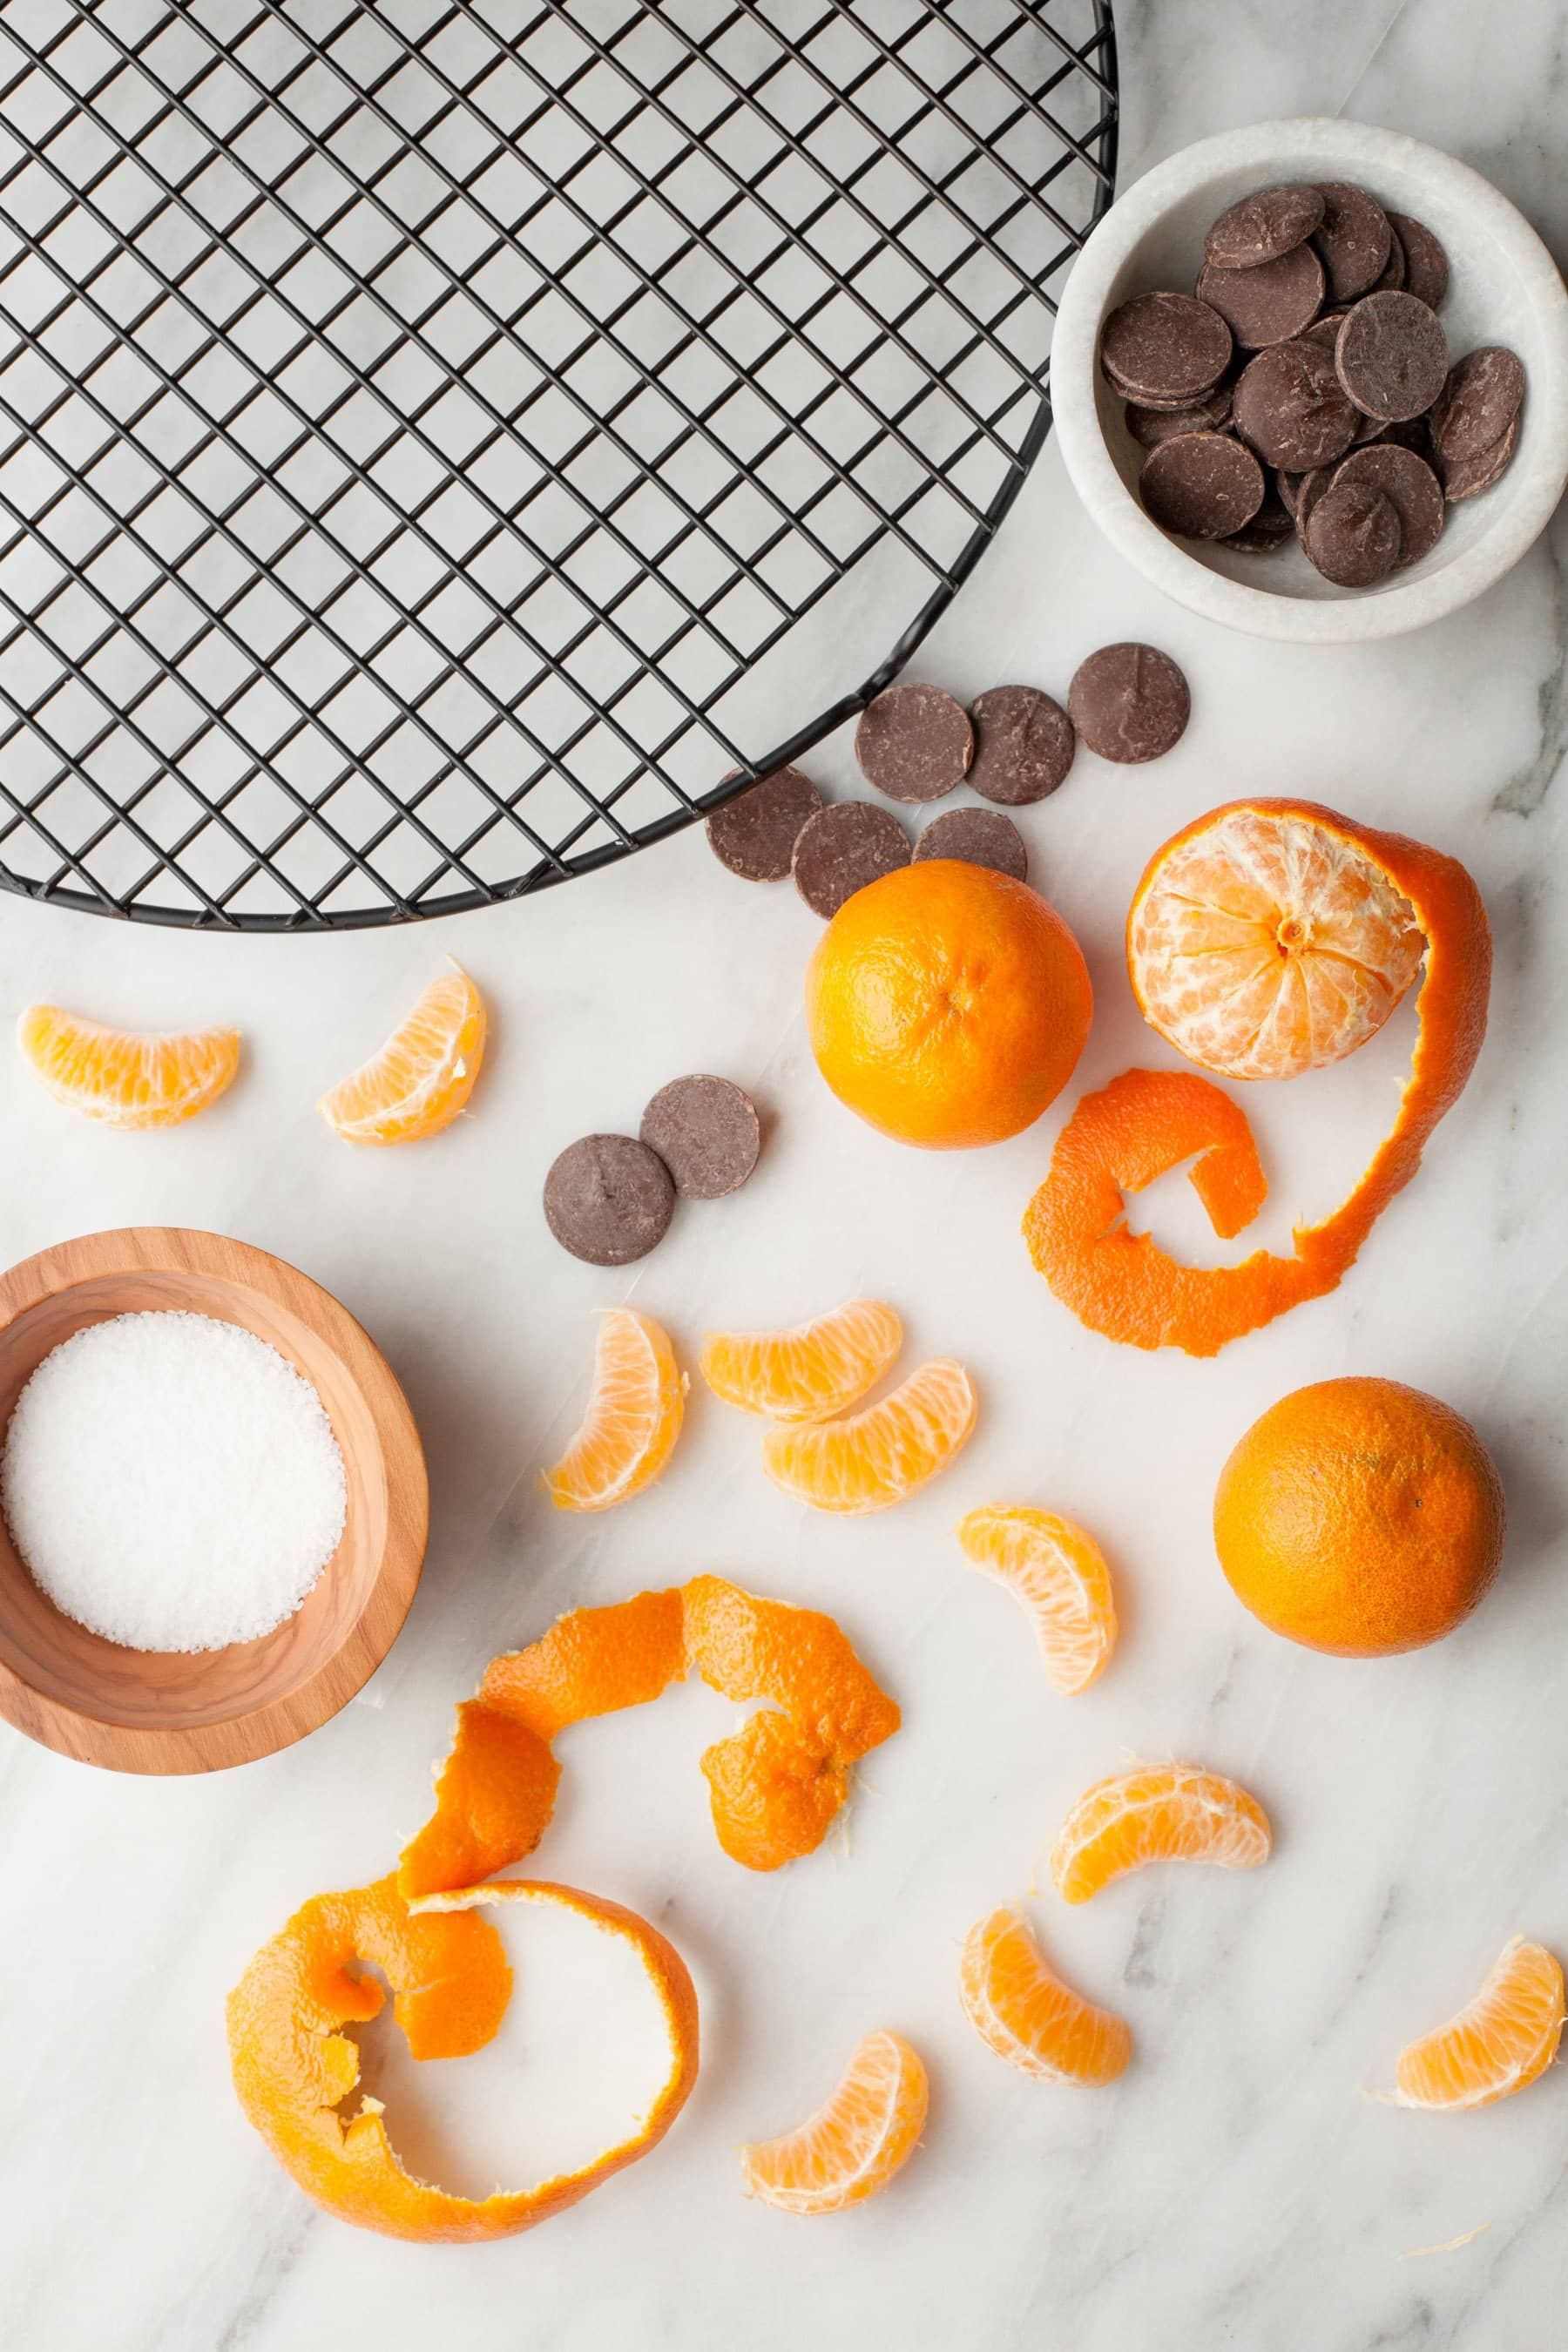 Salted Chocolate Dipped Clementines